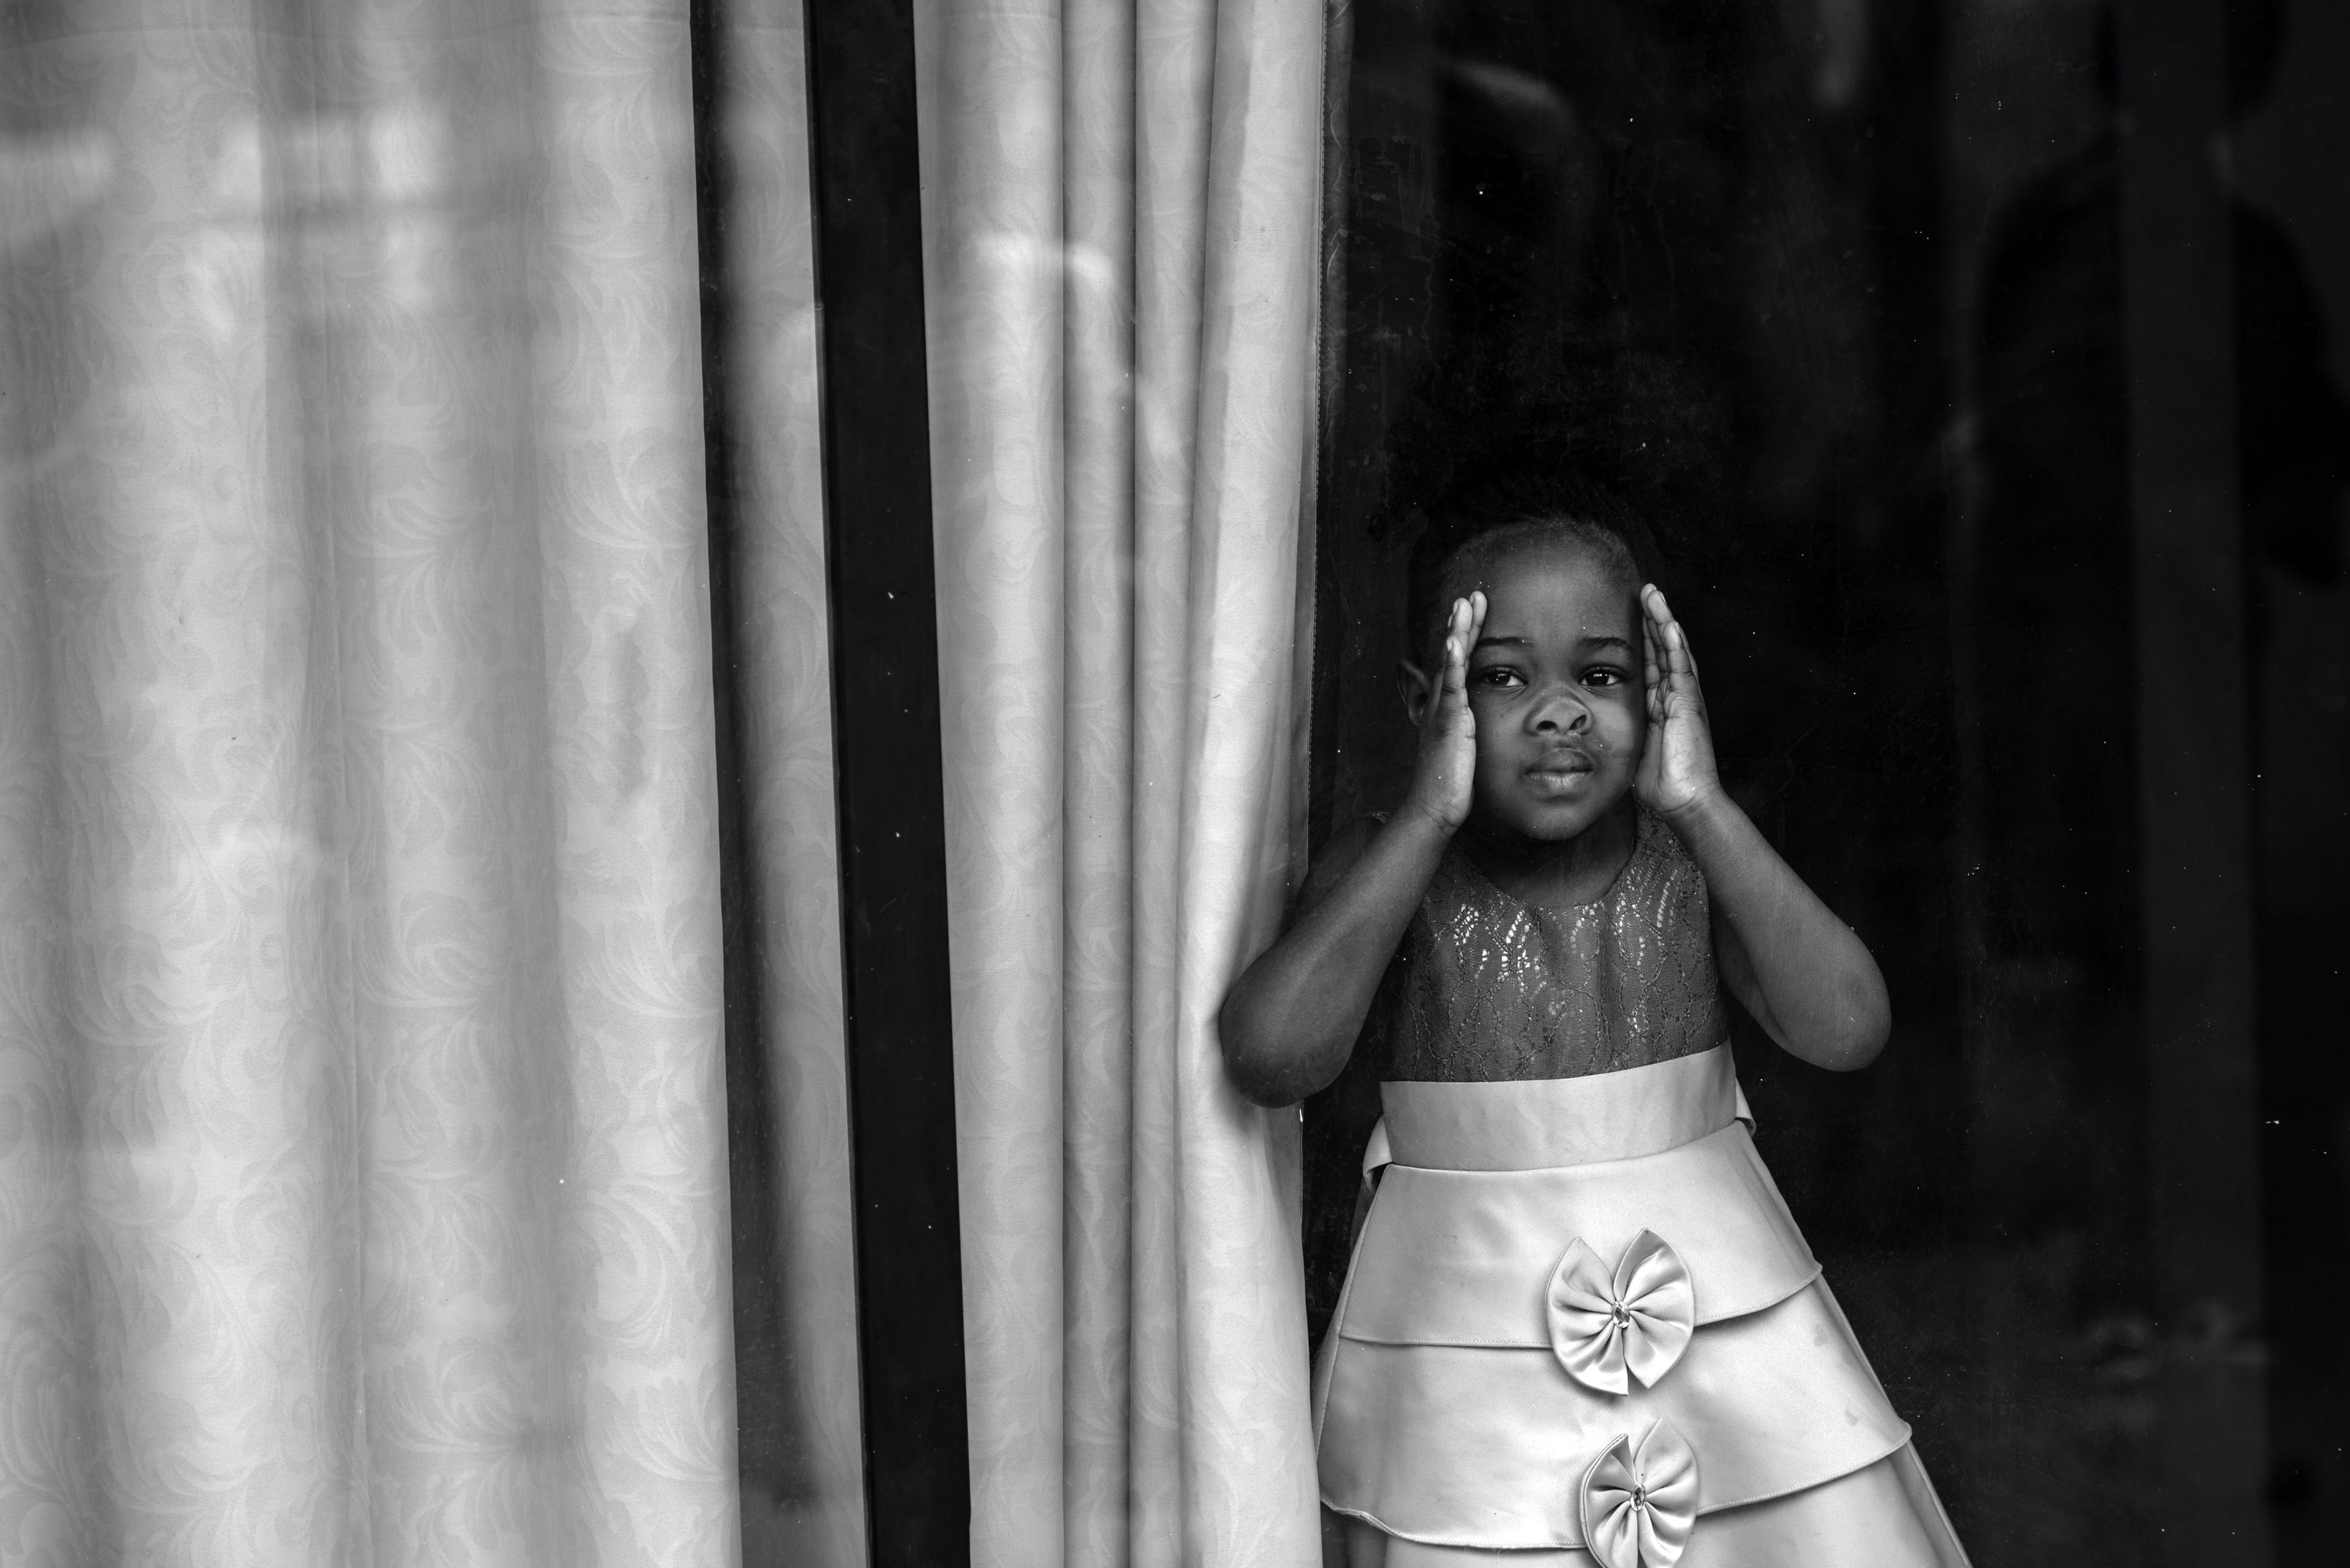 Monochrome Photography of a Girl Wearing Dress